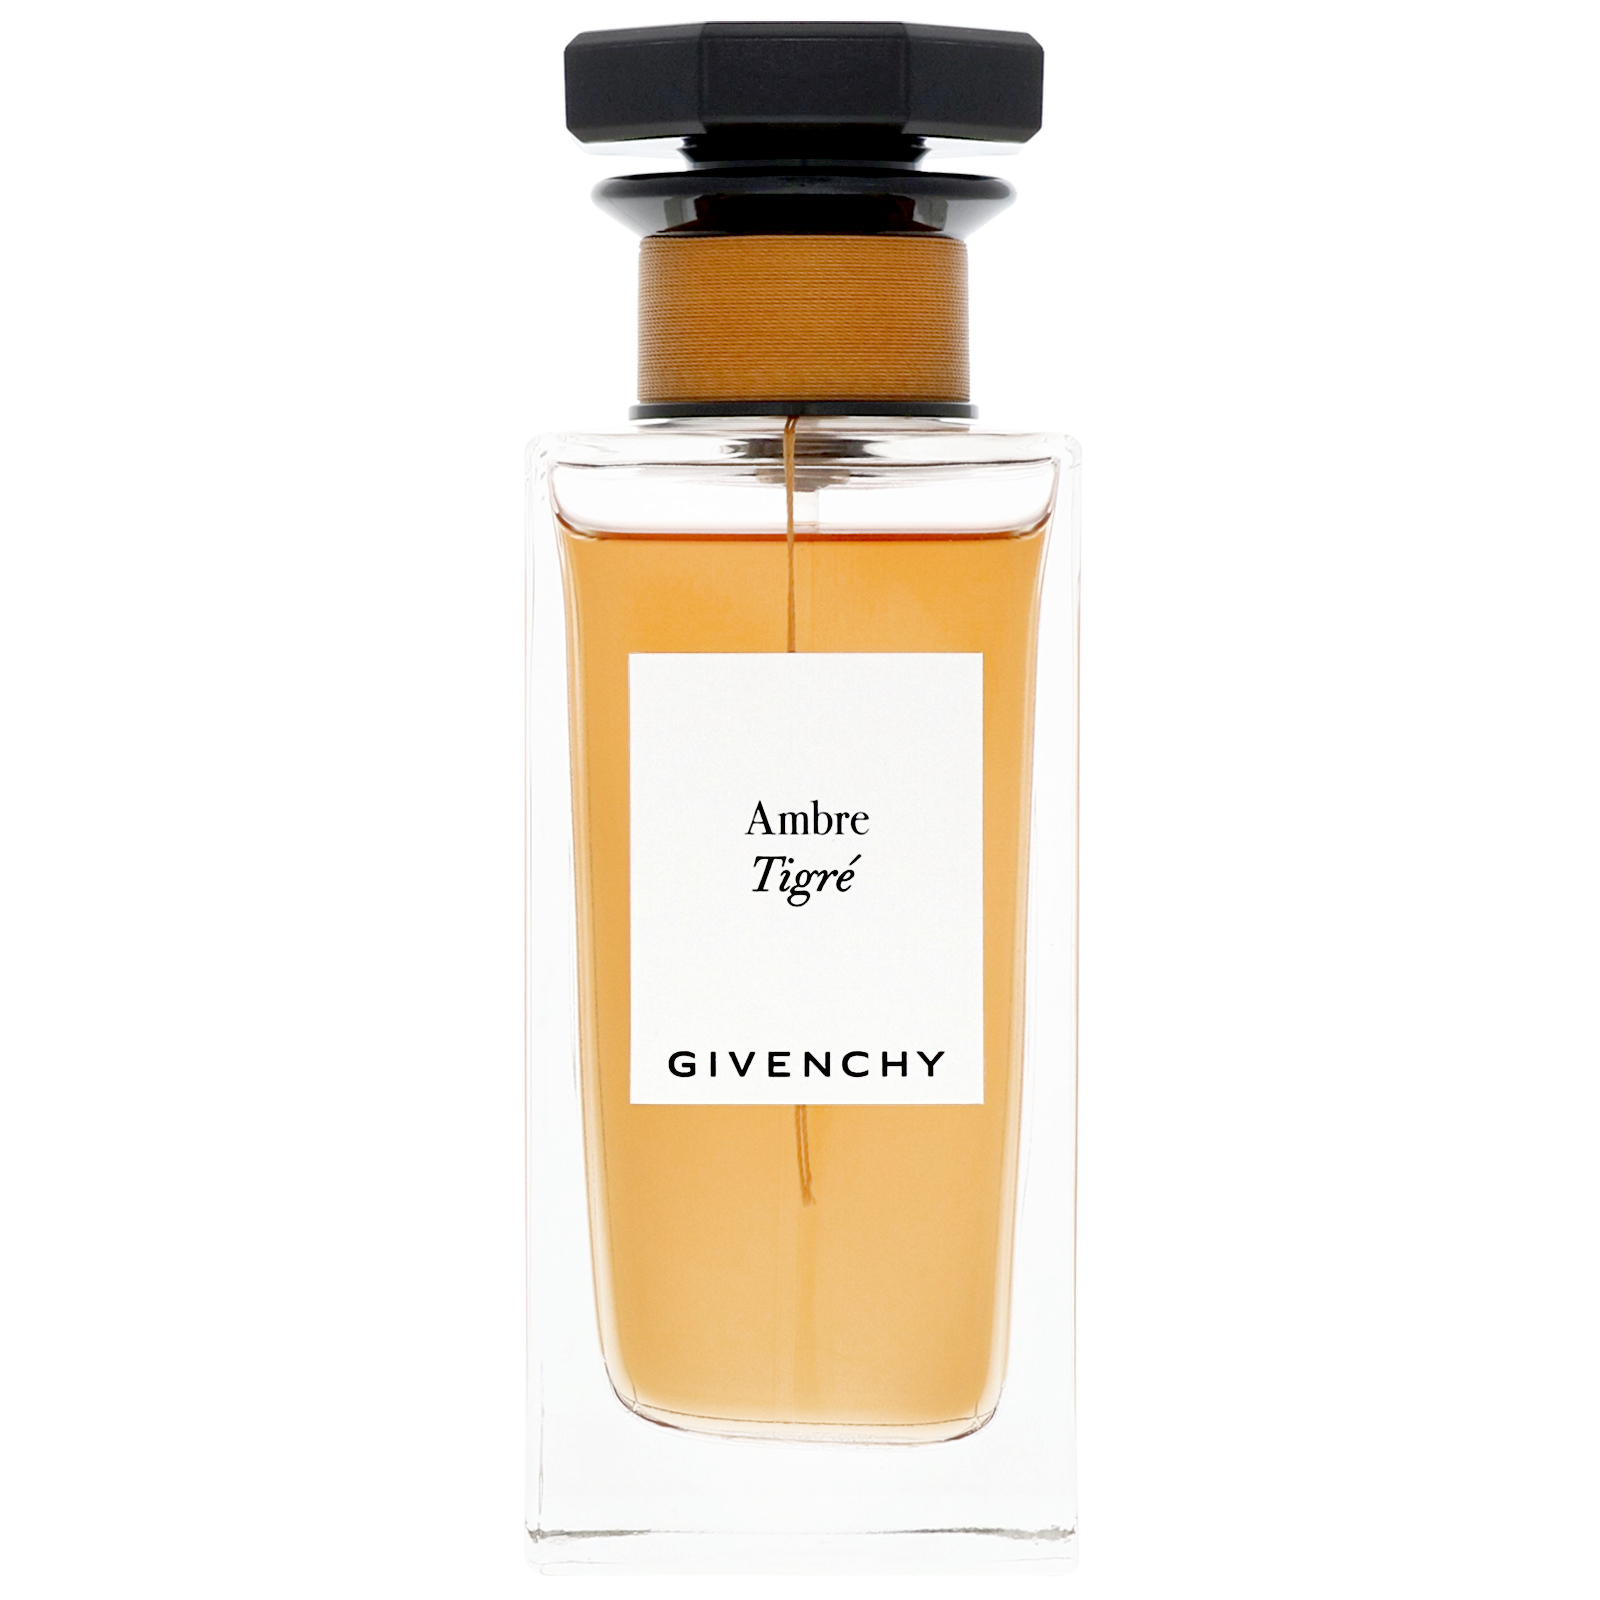 Givenchy Ambre Tigré Eau de Parfum Spray 100ml